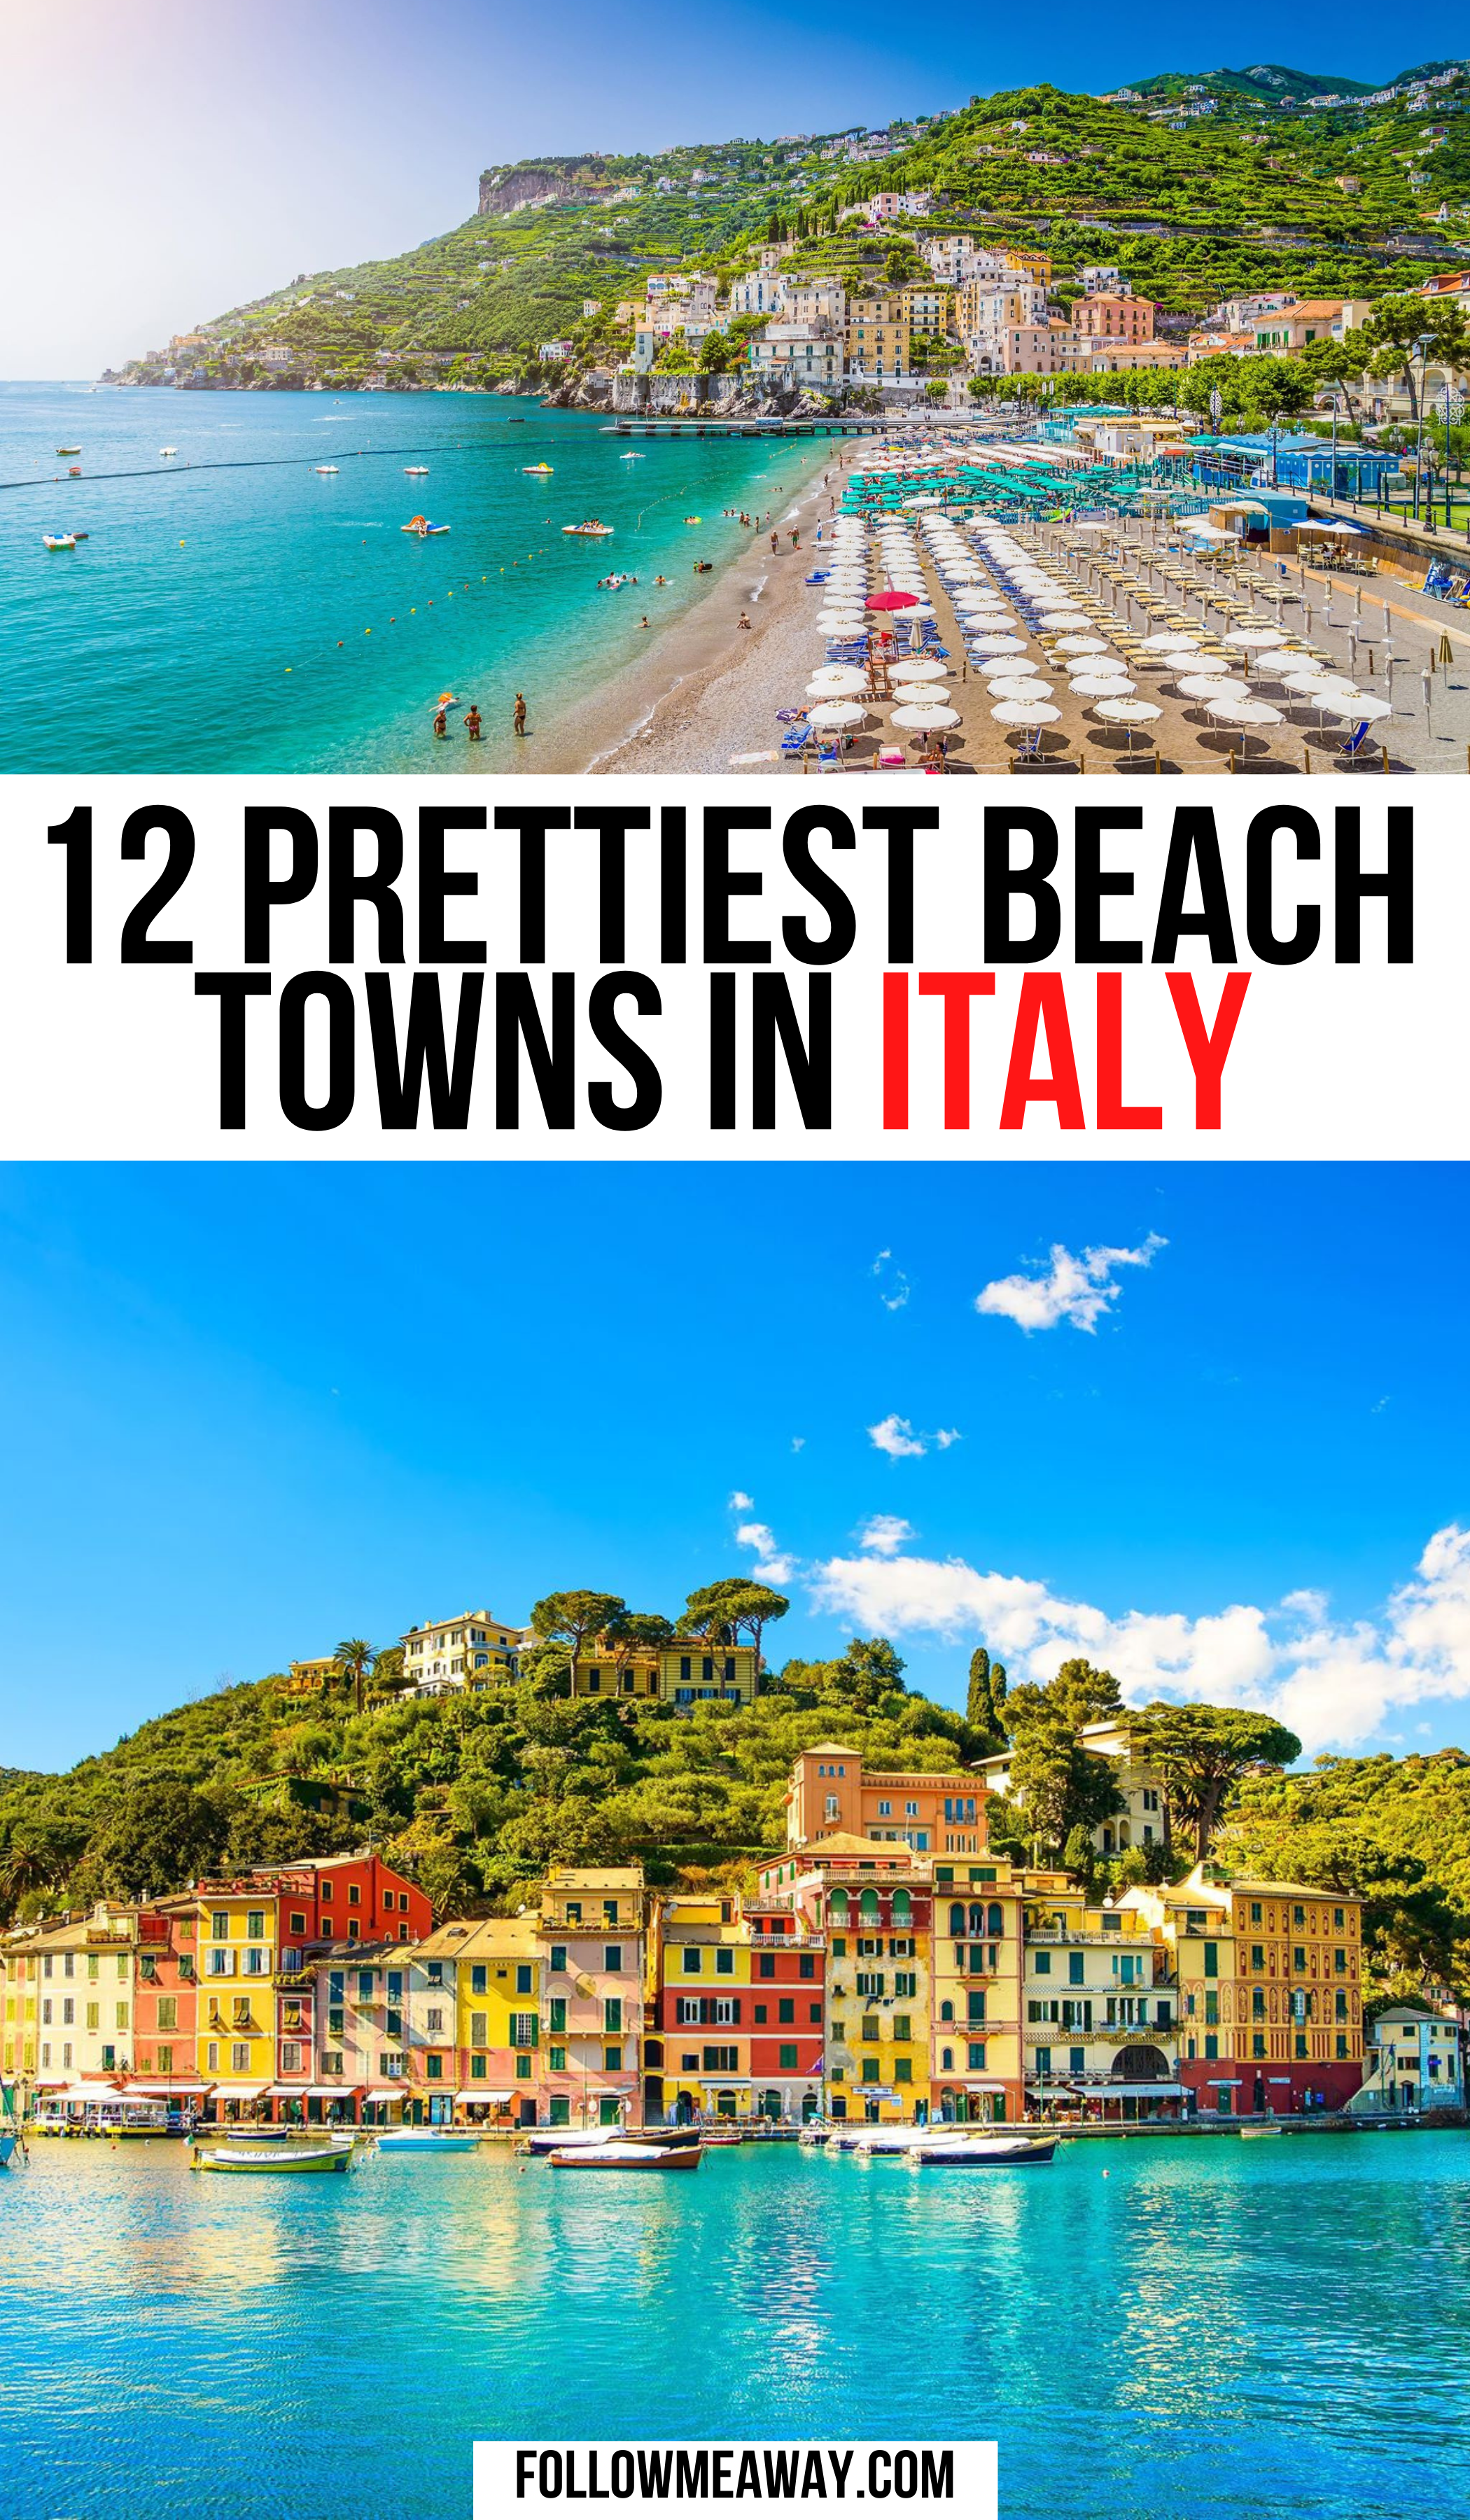 12 Prettiest Beach Towns In Italy | things to do in italy | where to go in italy | bucket list locations in Italy | best things to see in Italy | best towns to stay in italy | cutest beaches in italy #italy #traveltips